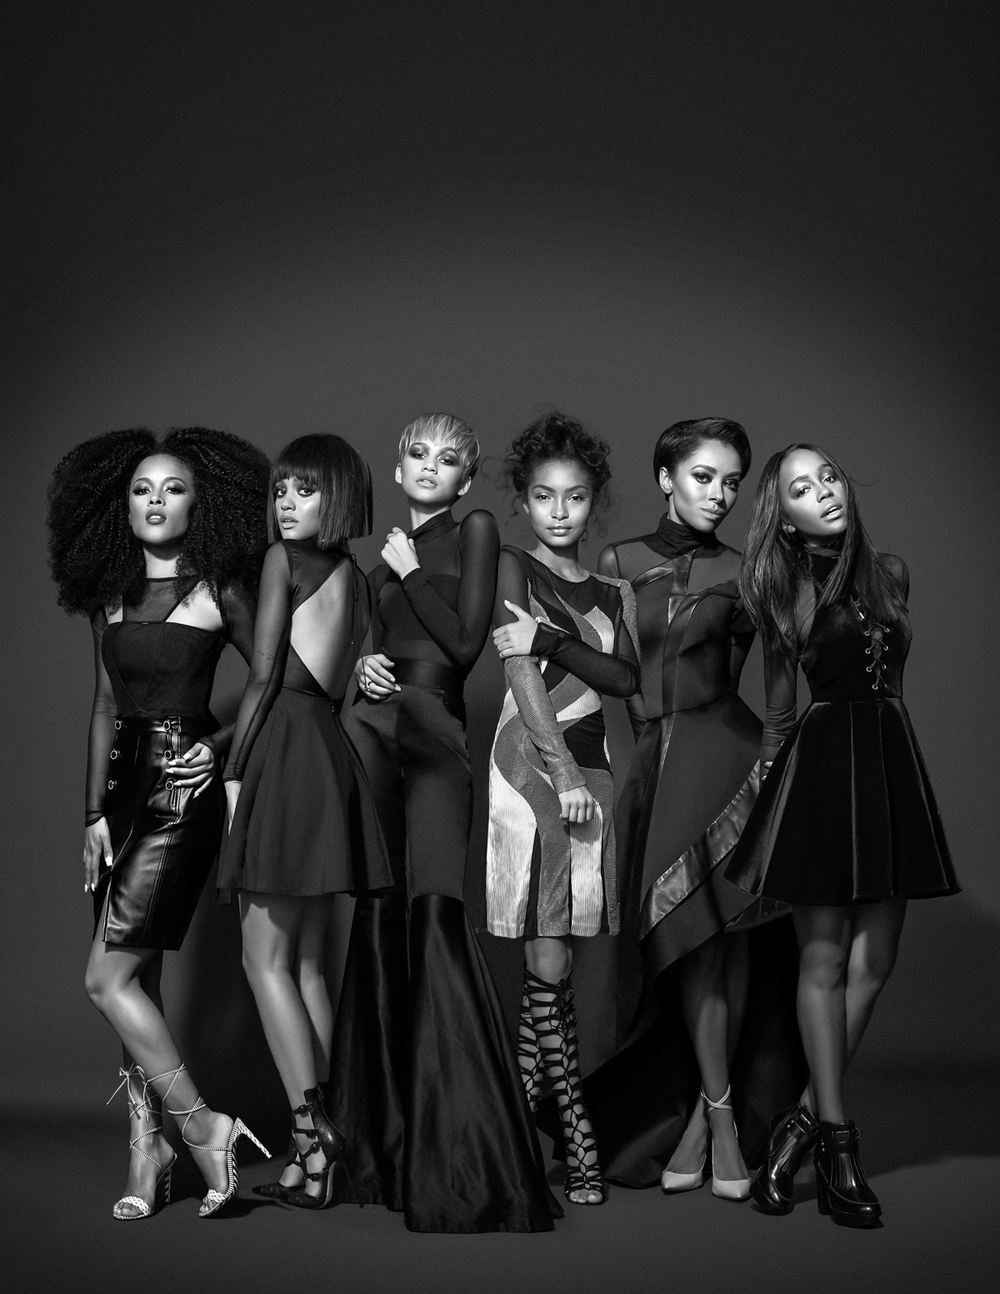 #GenerationNoir for Kode Magazine Photographed by Bradford Rogne | Featuring Serayah, Kiersey Clemons, Zendaya, Yara Shahid, Kat Graham and Aja Naomi King